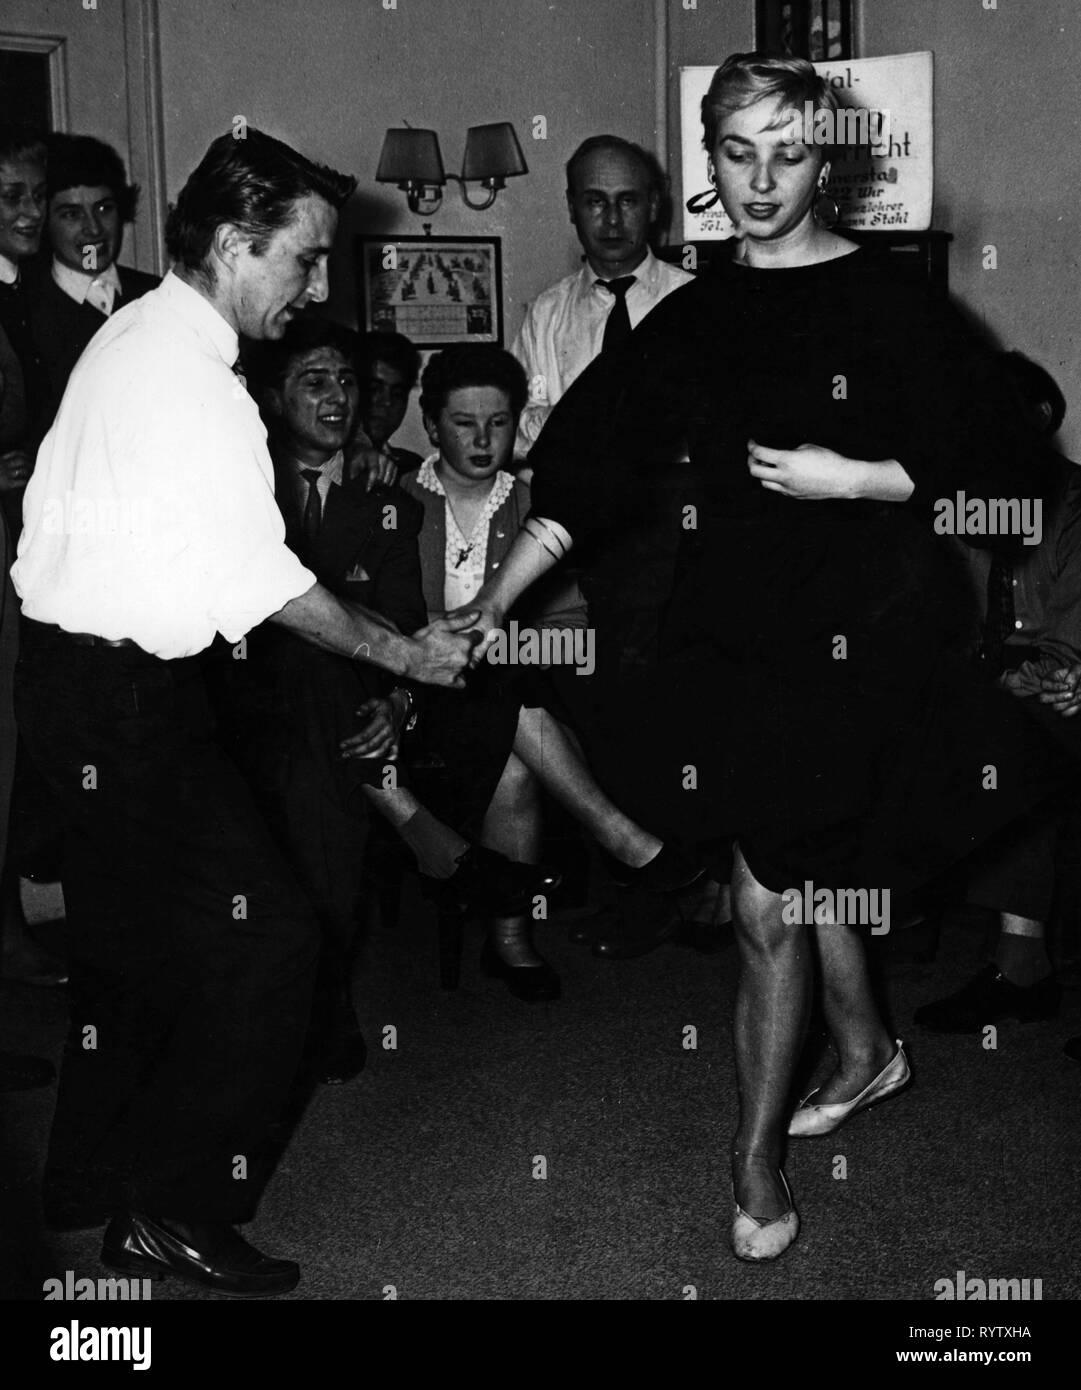 dance, jitterbug, champion 'Stupsi' dancing, Munich, 1958, Additional-Rights-Clearance-Info-Not-Available - Stock Image